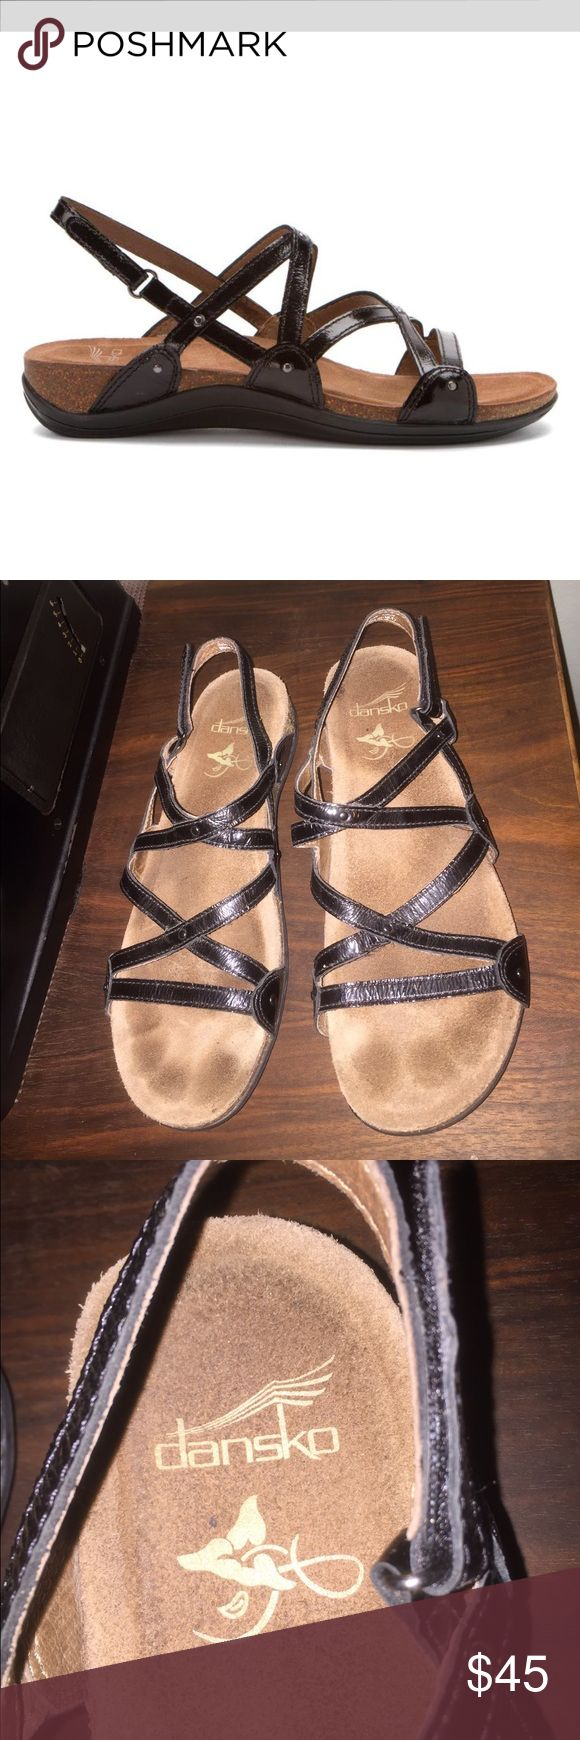 SALE Dansko Jovie sandals in black patent 39 8 8.5 WILL BUNDLE W OTHER PAIR for $45! Just do a bundle offer. 😘  comfortable Dansko Jovie sandals! 1st pic is stock photo.  See pics for actual sandals. In good preowned condition w some signs of wear to the footbed and the leather uppers. A more laid back gladiator with cork soles. Worn for one season. These go with everything!! Also have a neutral metallic gold pair listed! Size 39 and I wear an 8 or 8.5. PM says 39 is a 9, but know your size…